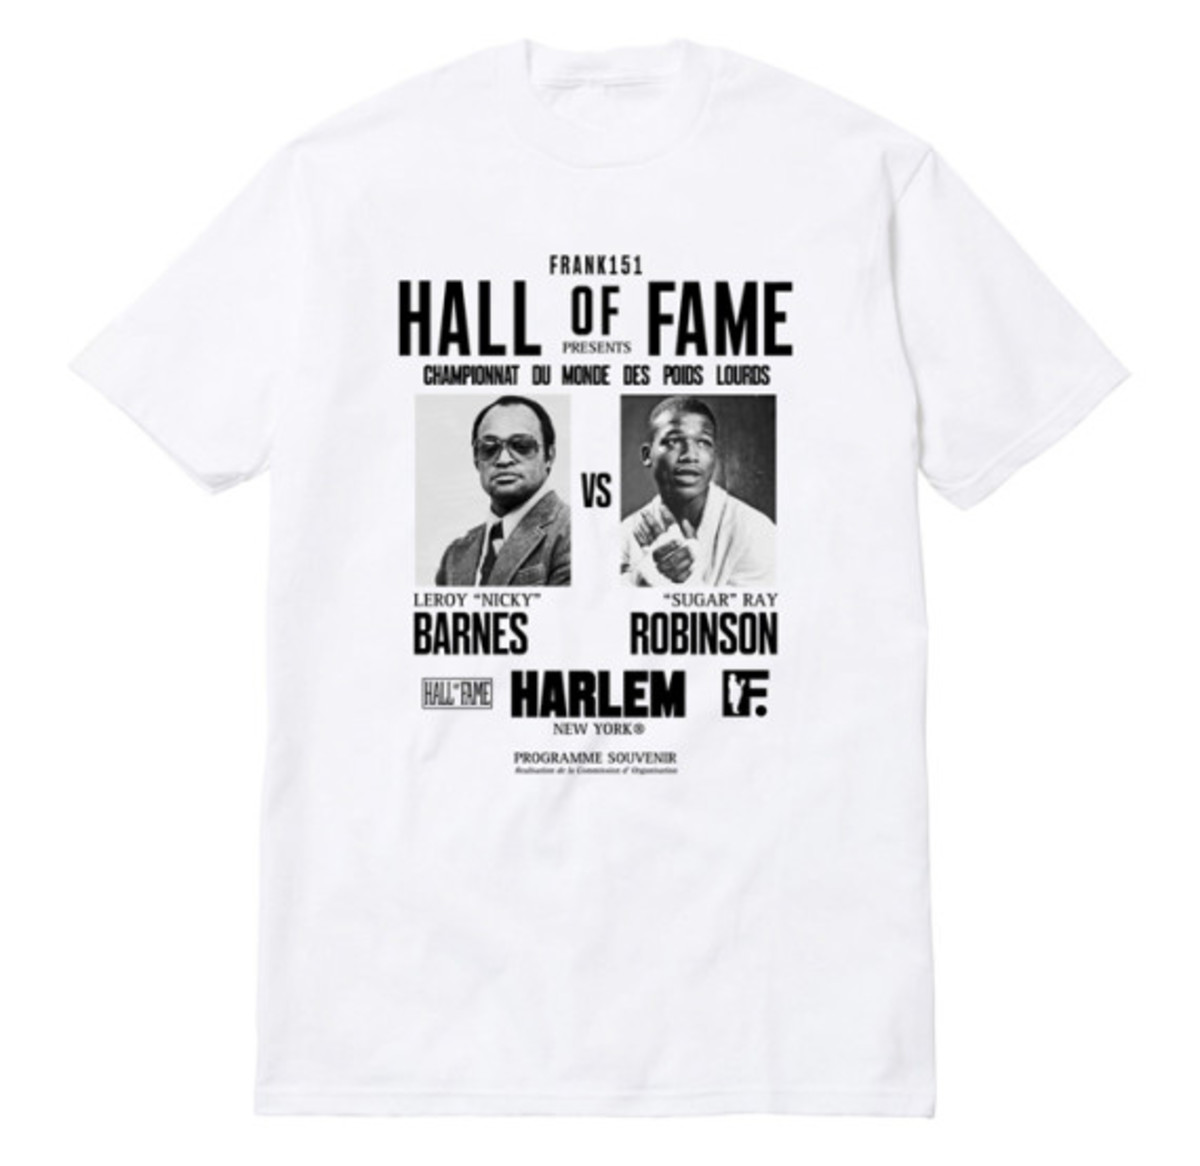 frank151-hall-of-fame-collection-05